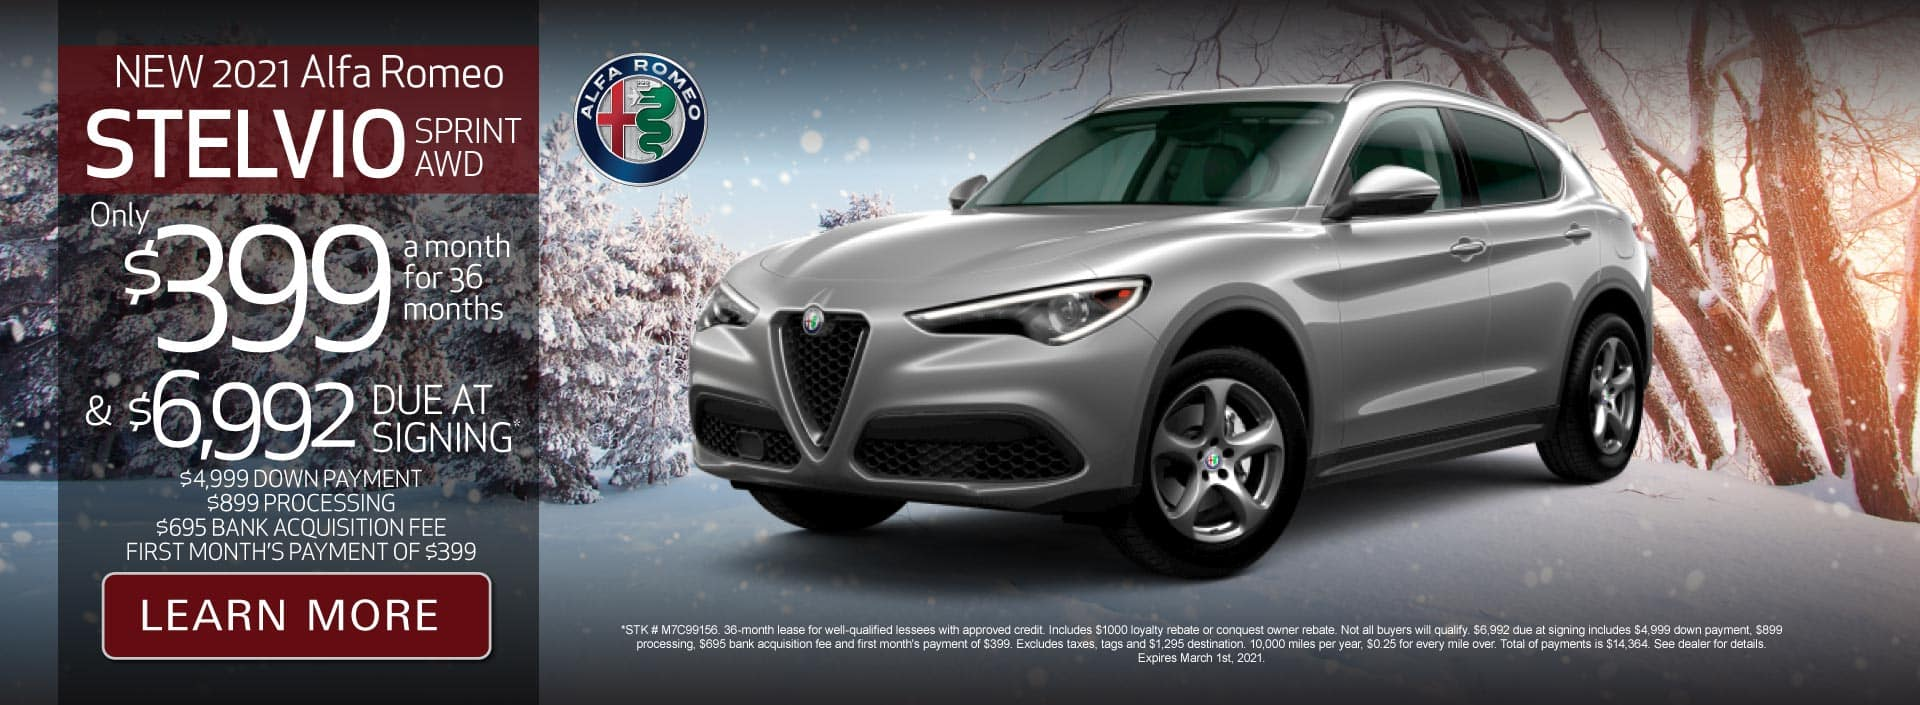 New 2021 Stelvio Sprint AWD Only $399 a month for 36 months | Learn More